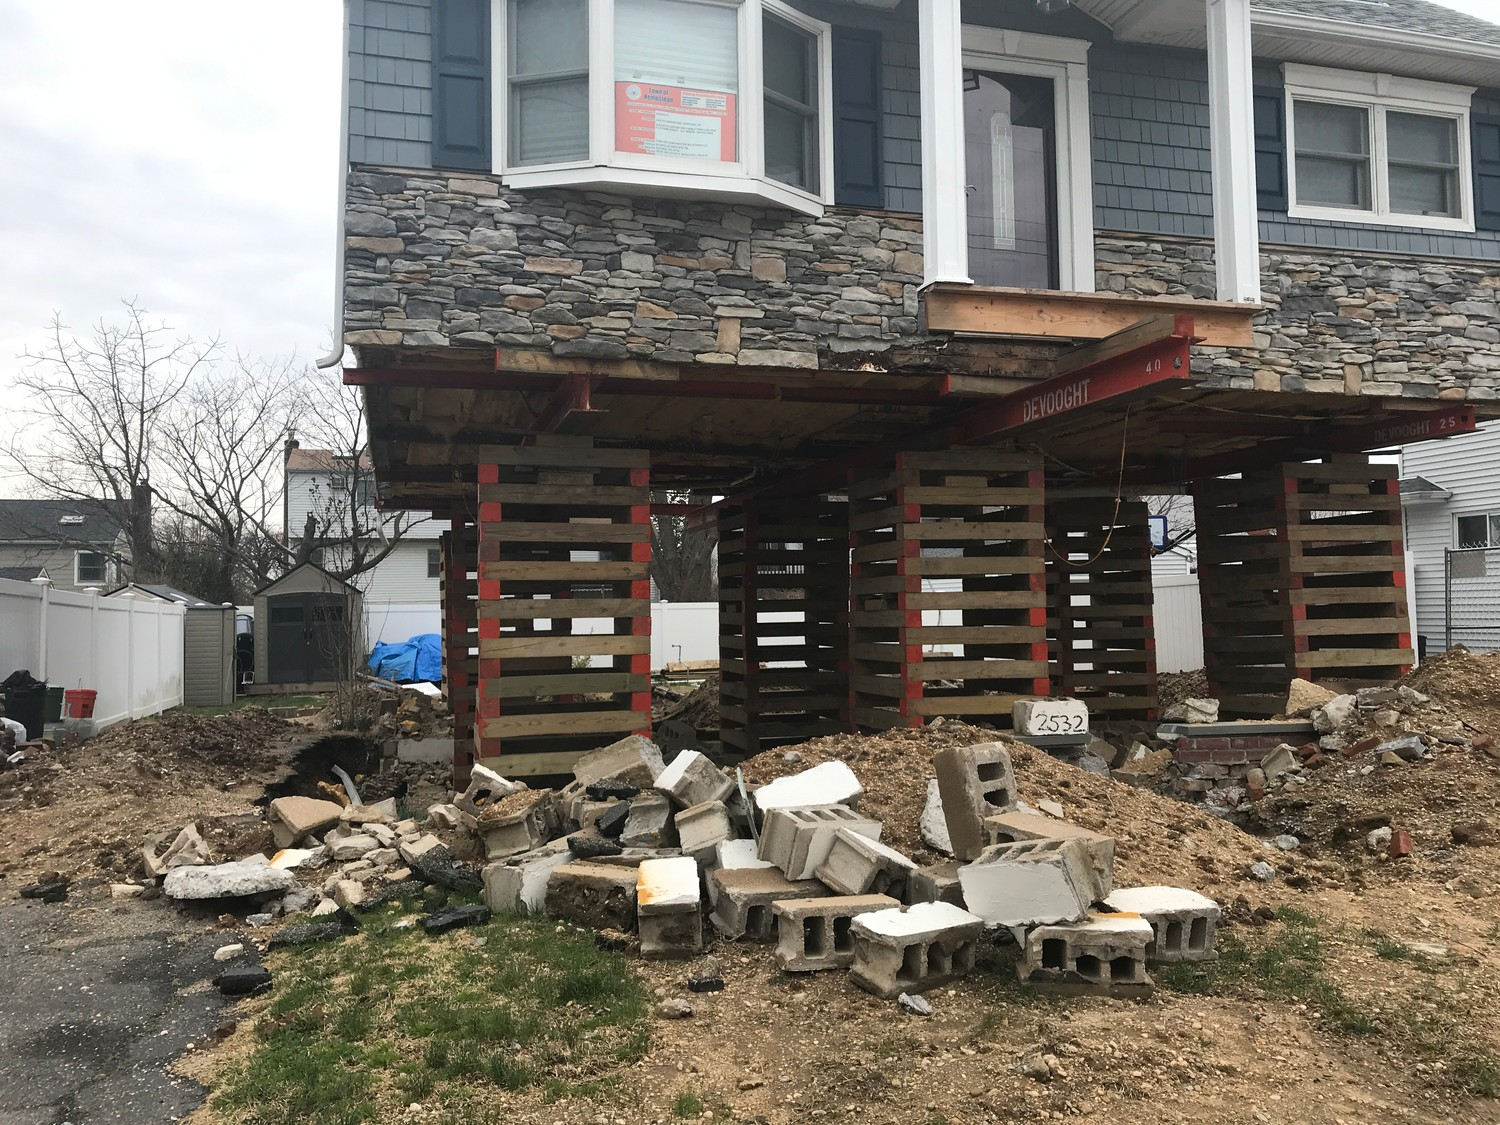 3.	The Dalys' house on Sycamore Drive in Wantagh was lifted but no further work– despite them giving the contractor $70,000.